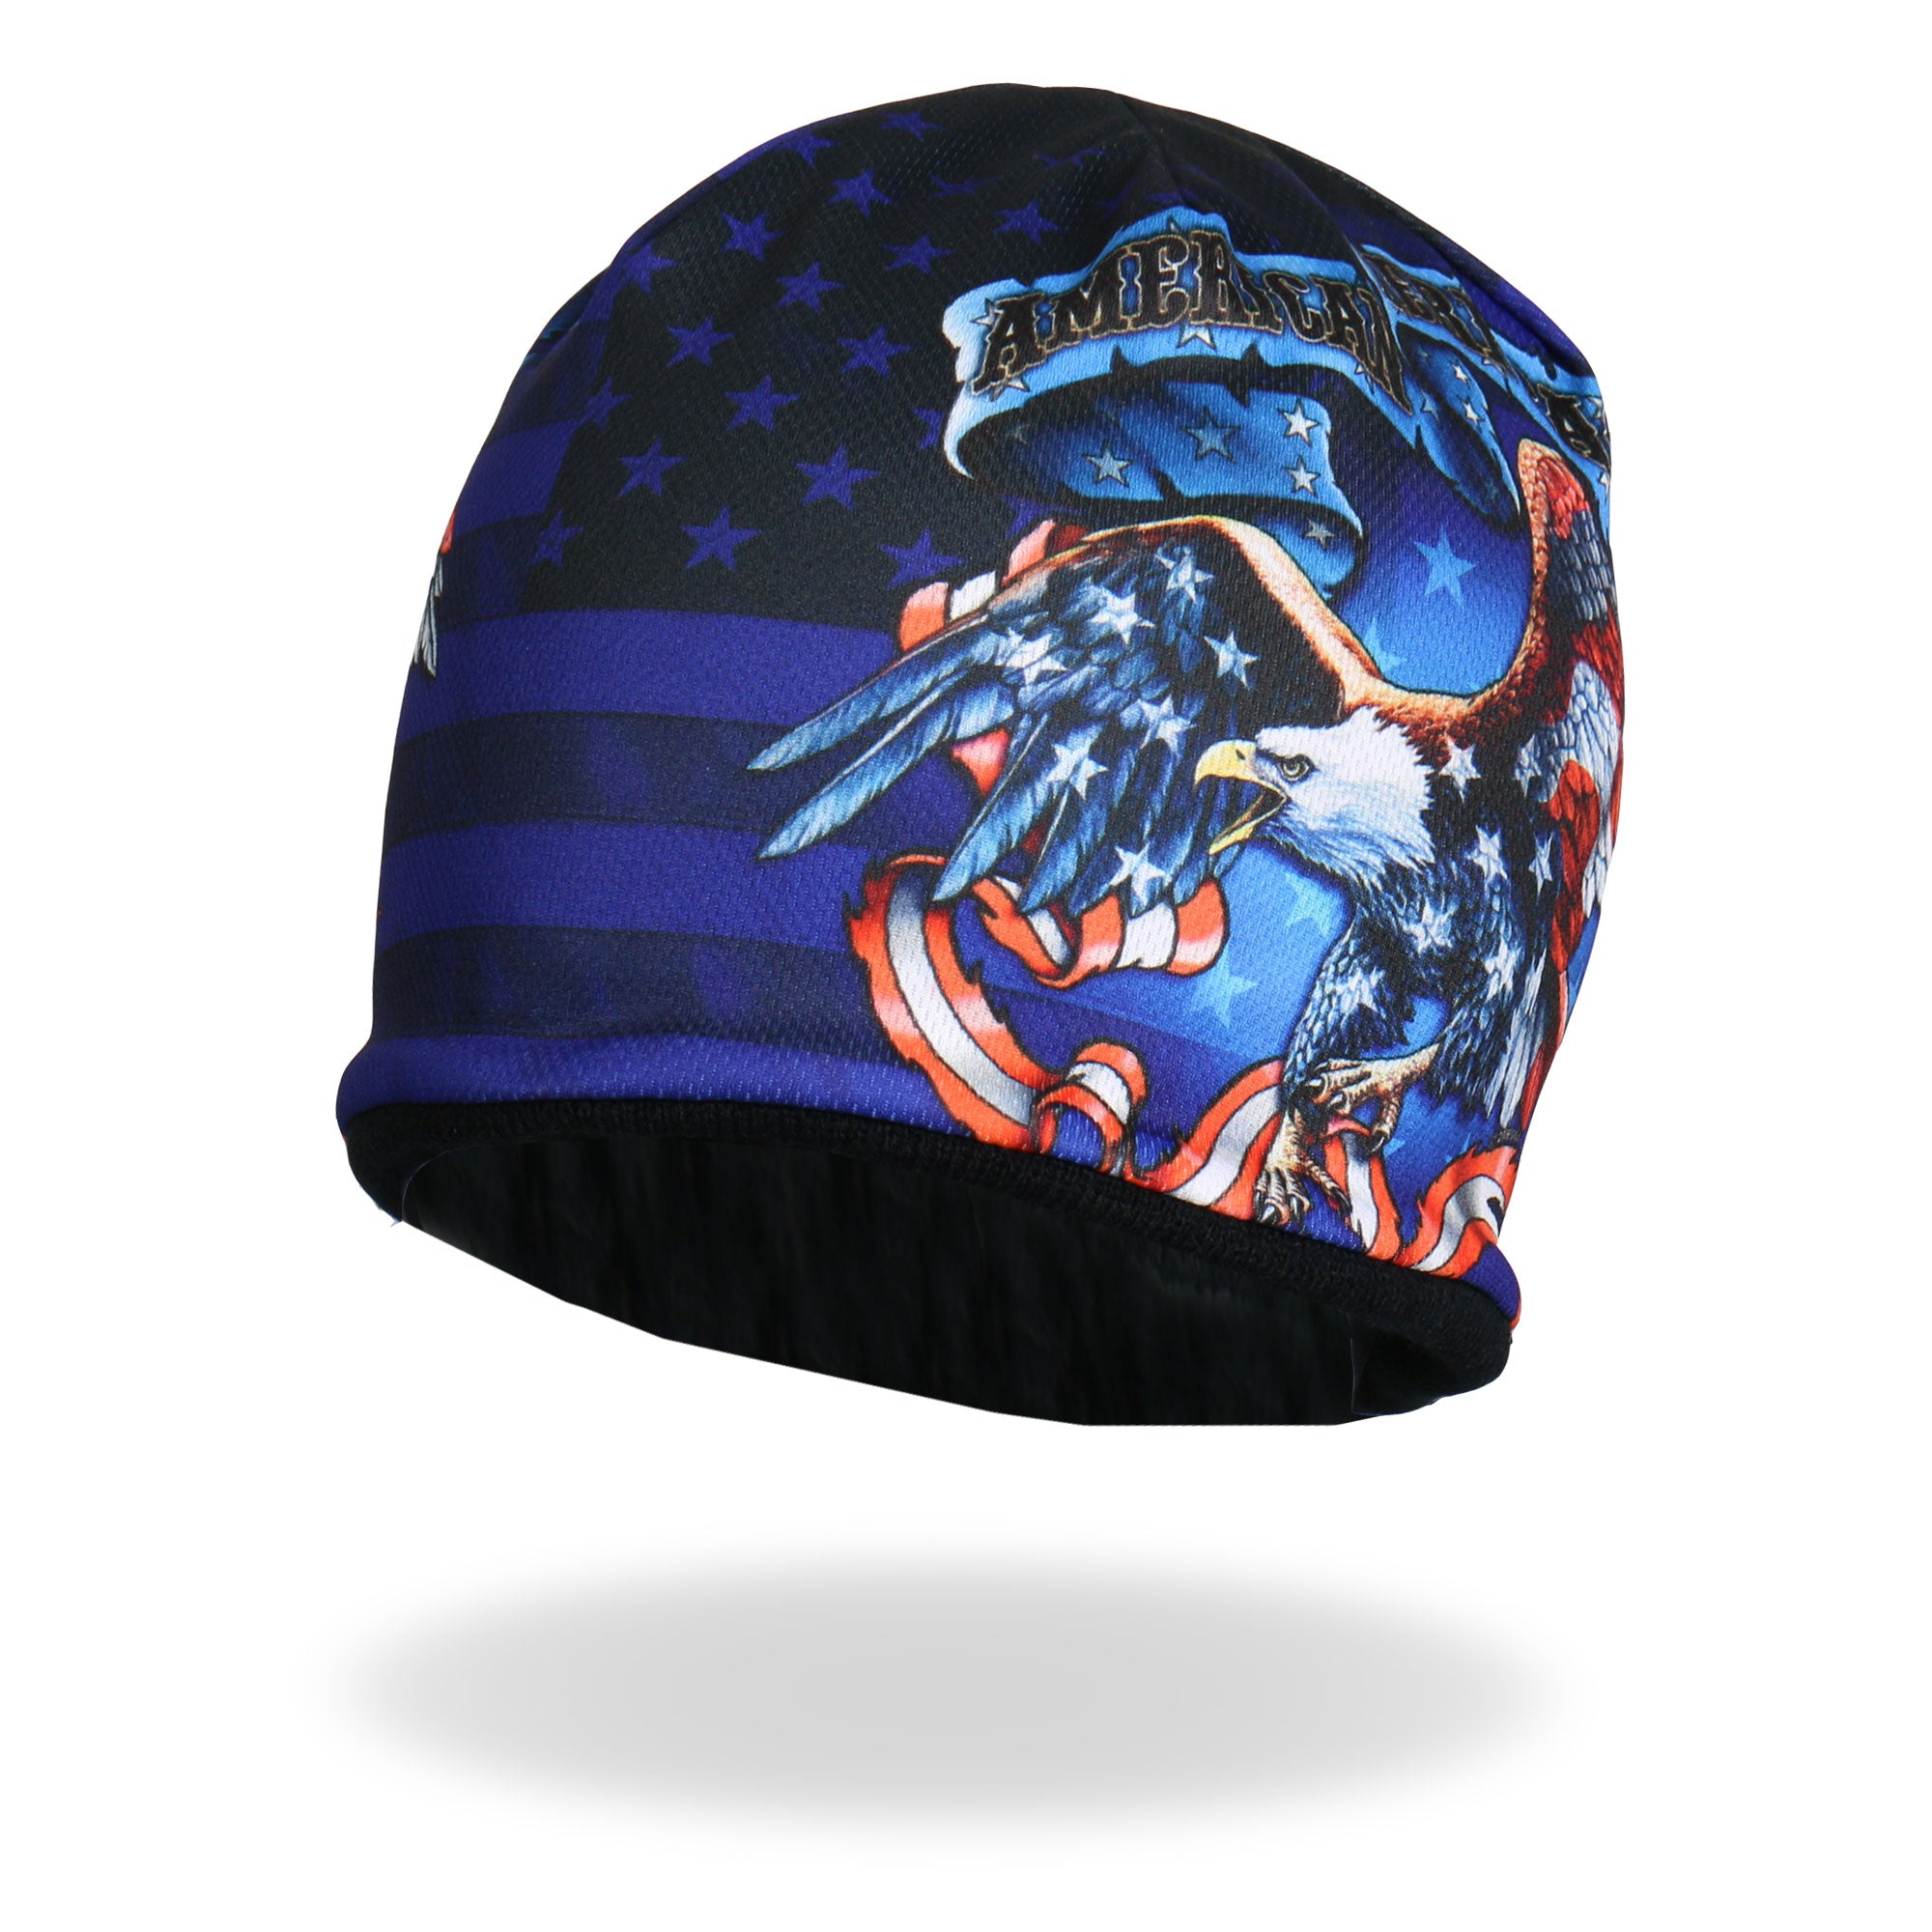 Hot Leathers Sublimated American Heritage Beanie